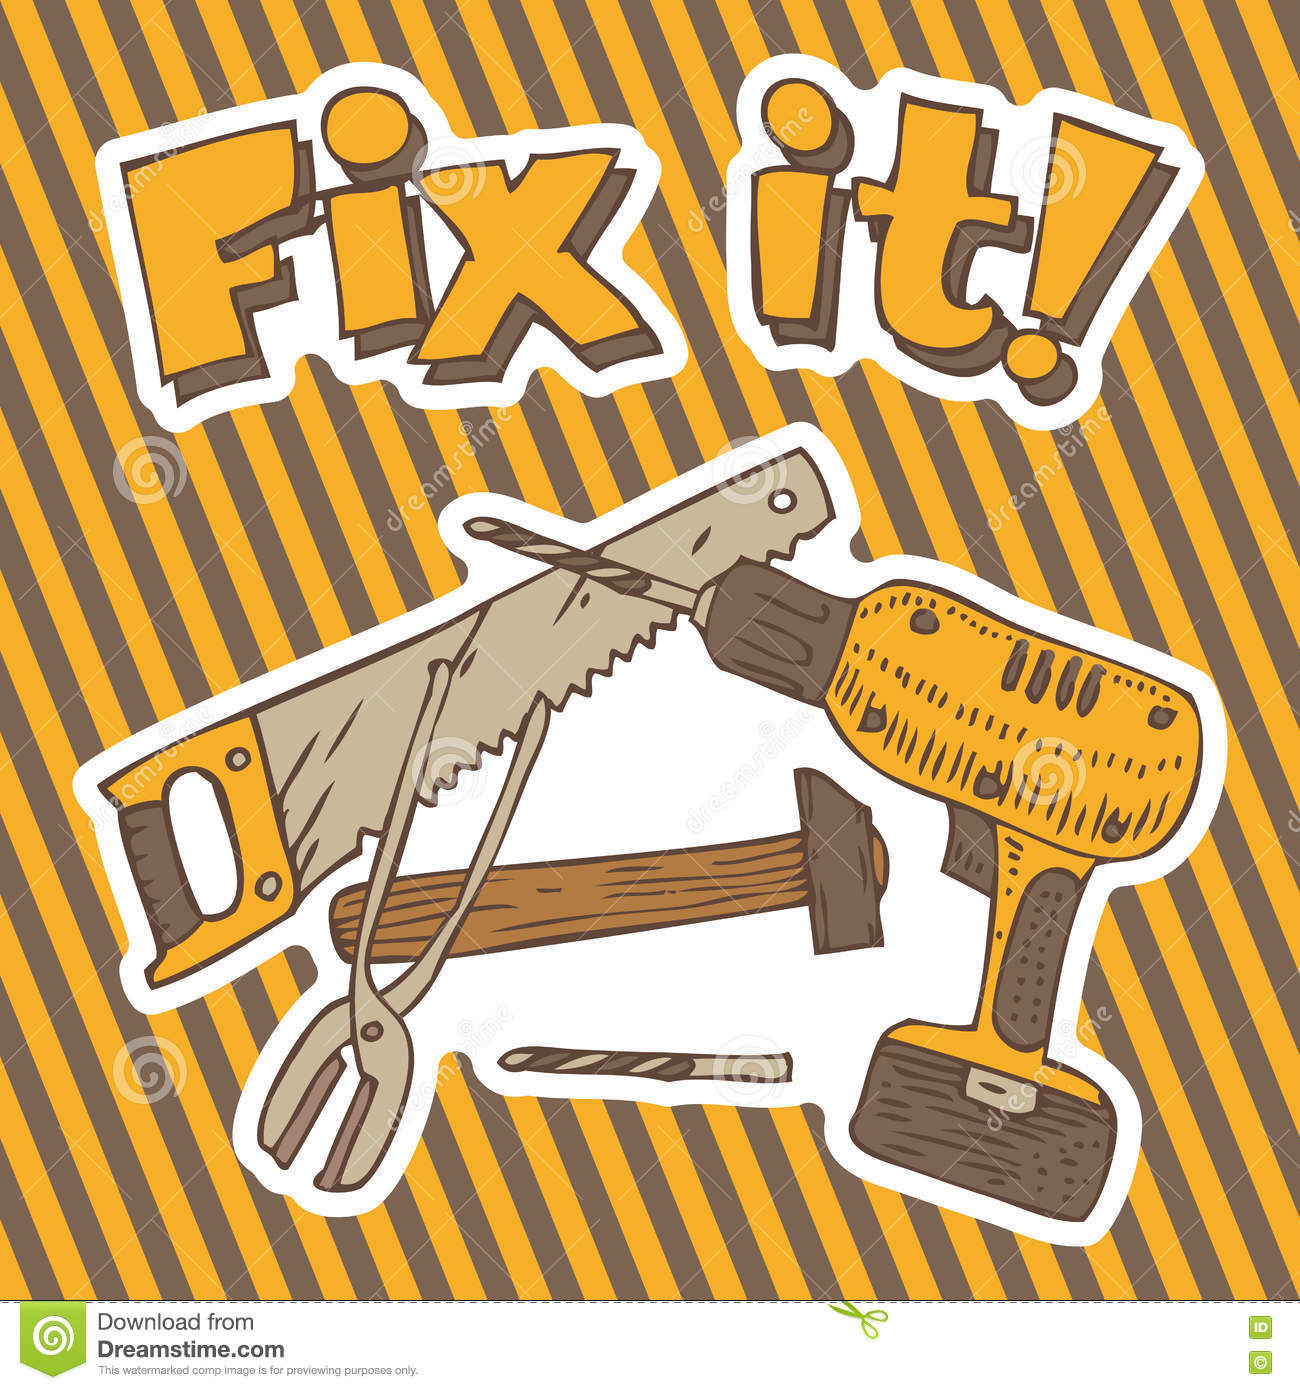 Repair Fixing Fix It Composition With Tools Stock Illustration Illustration